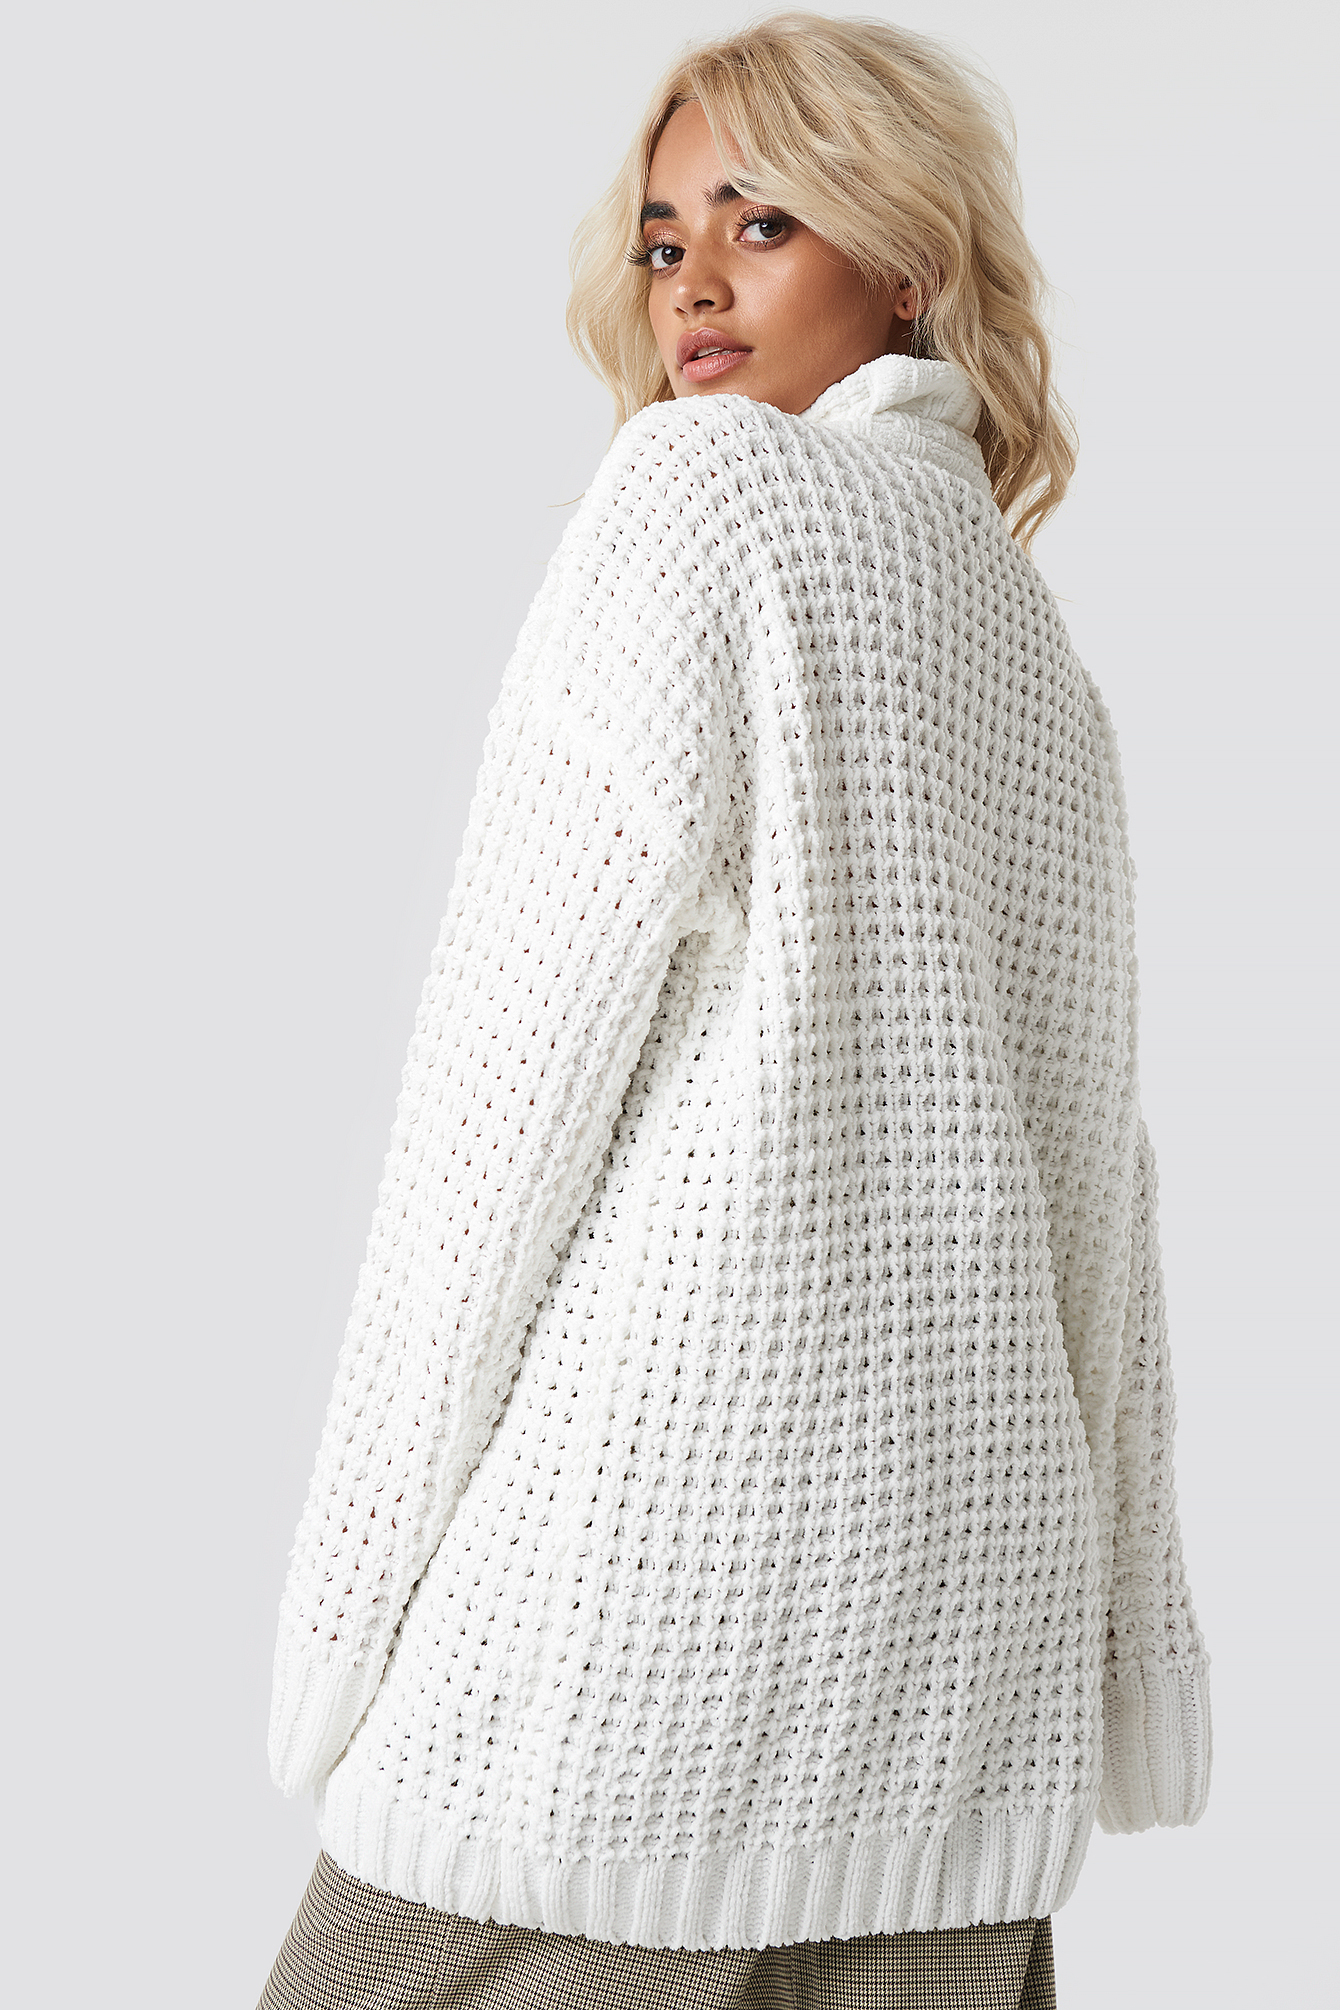 Offwhite Chunky Oversized Knitted Sweater